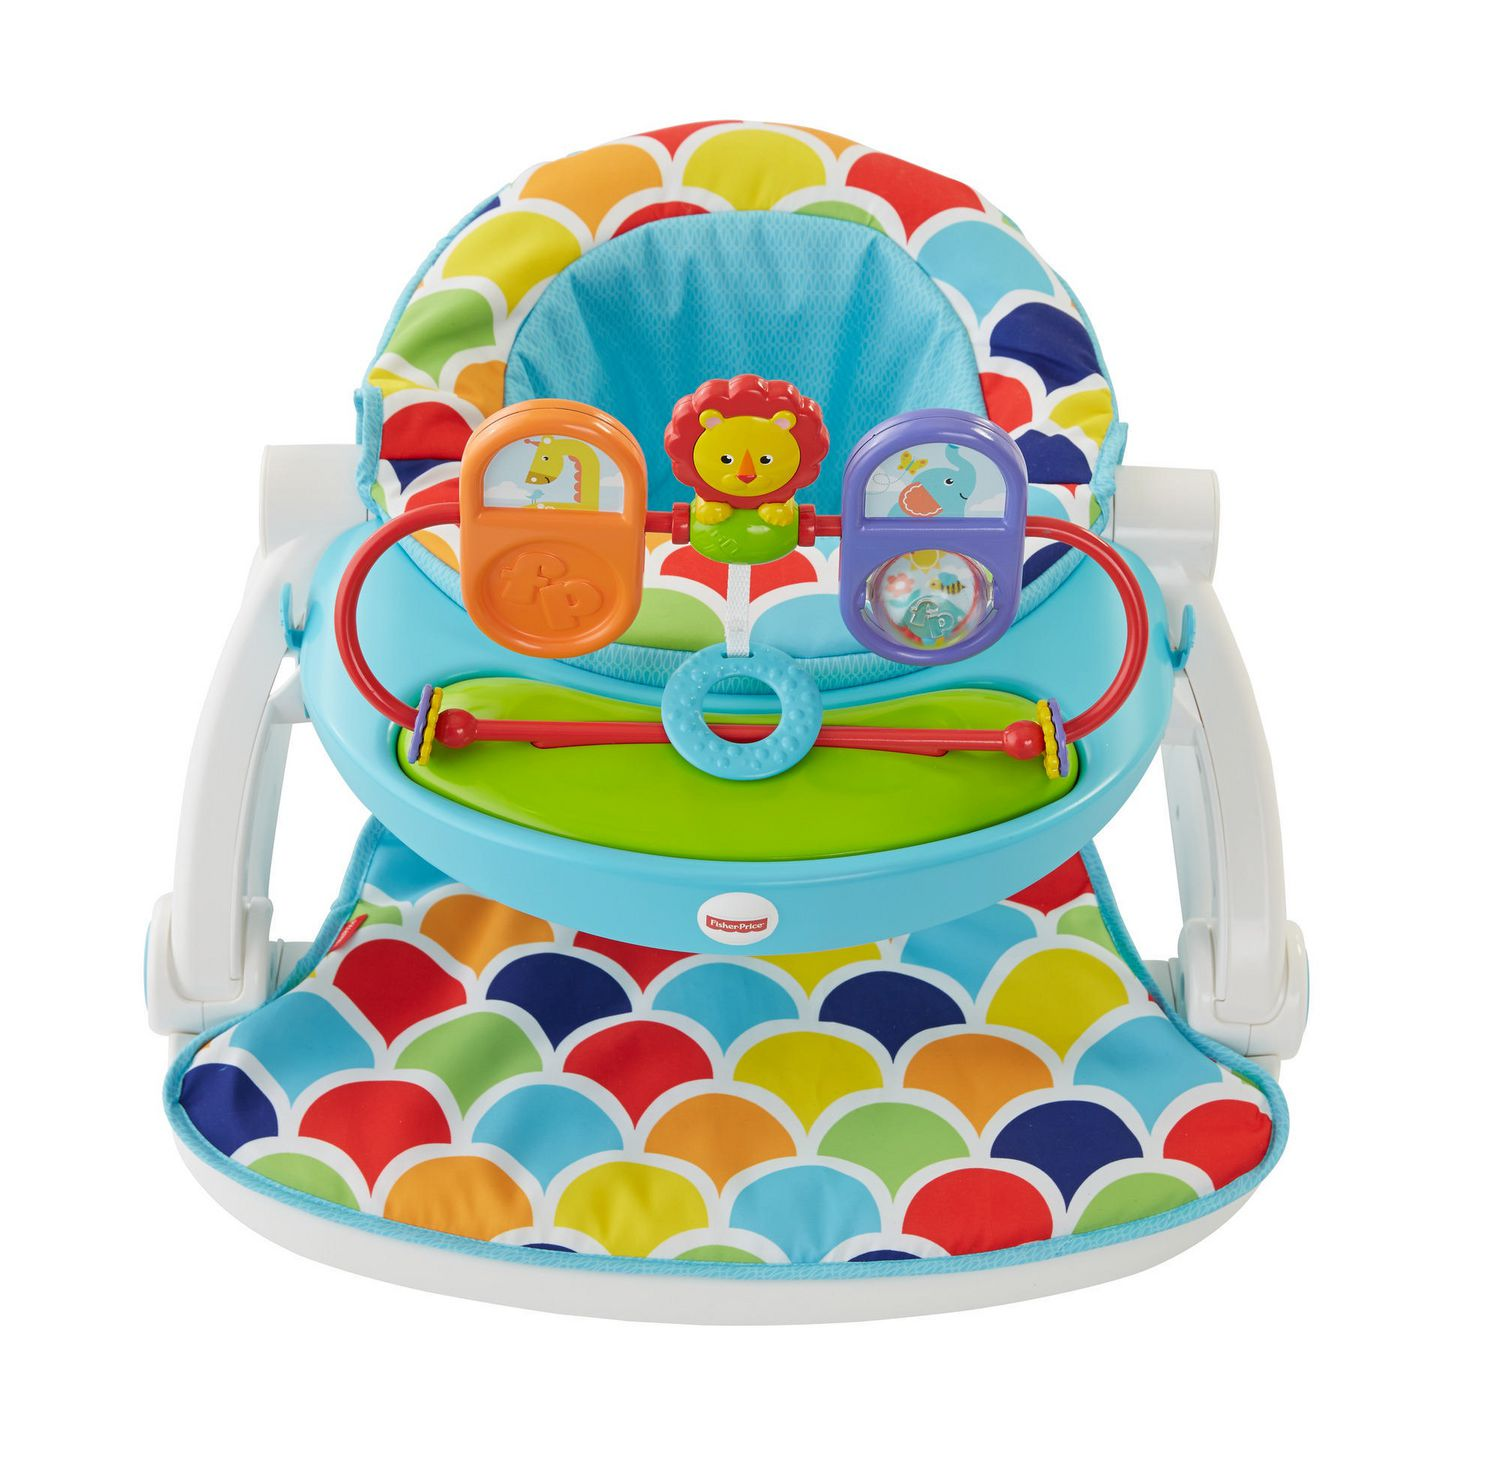 Booster Seats or Highchairs for Babies & Toddlers at Walmart